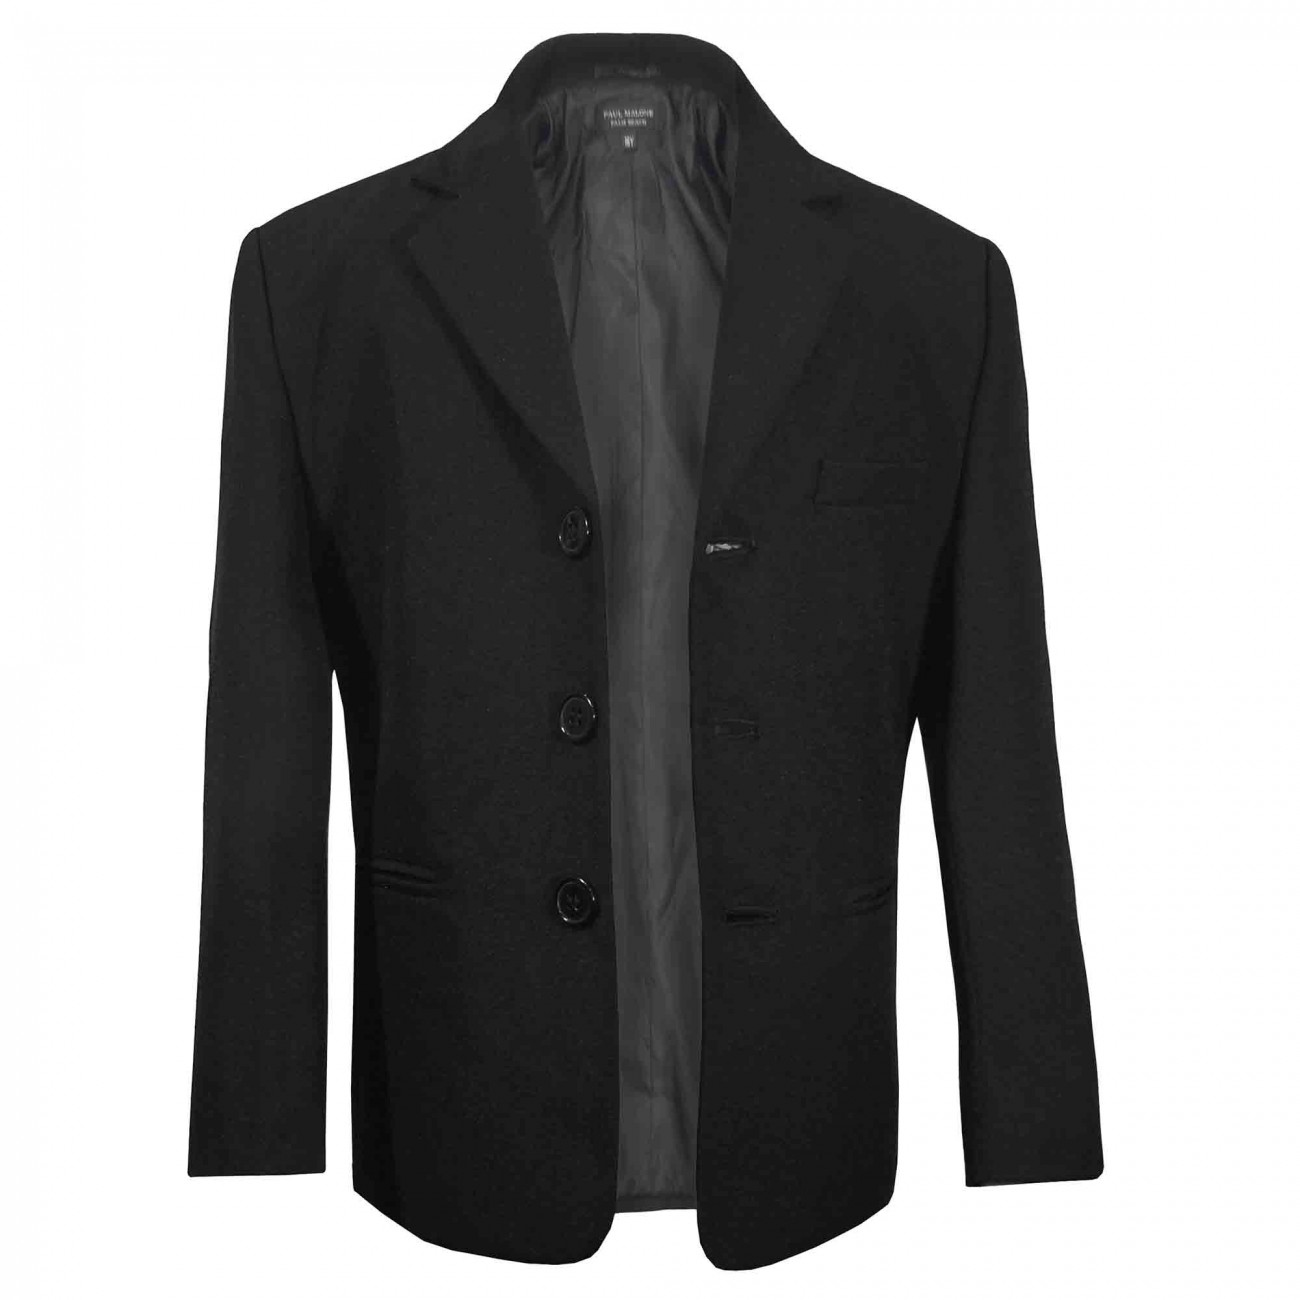 Boys suit jacket black solid 41